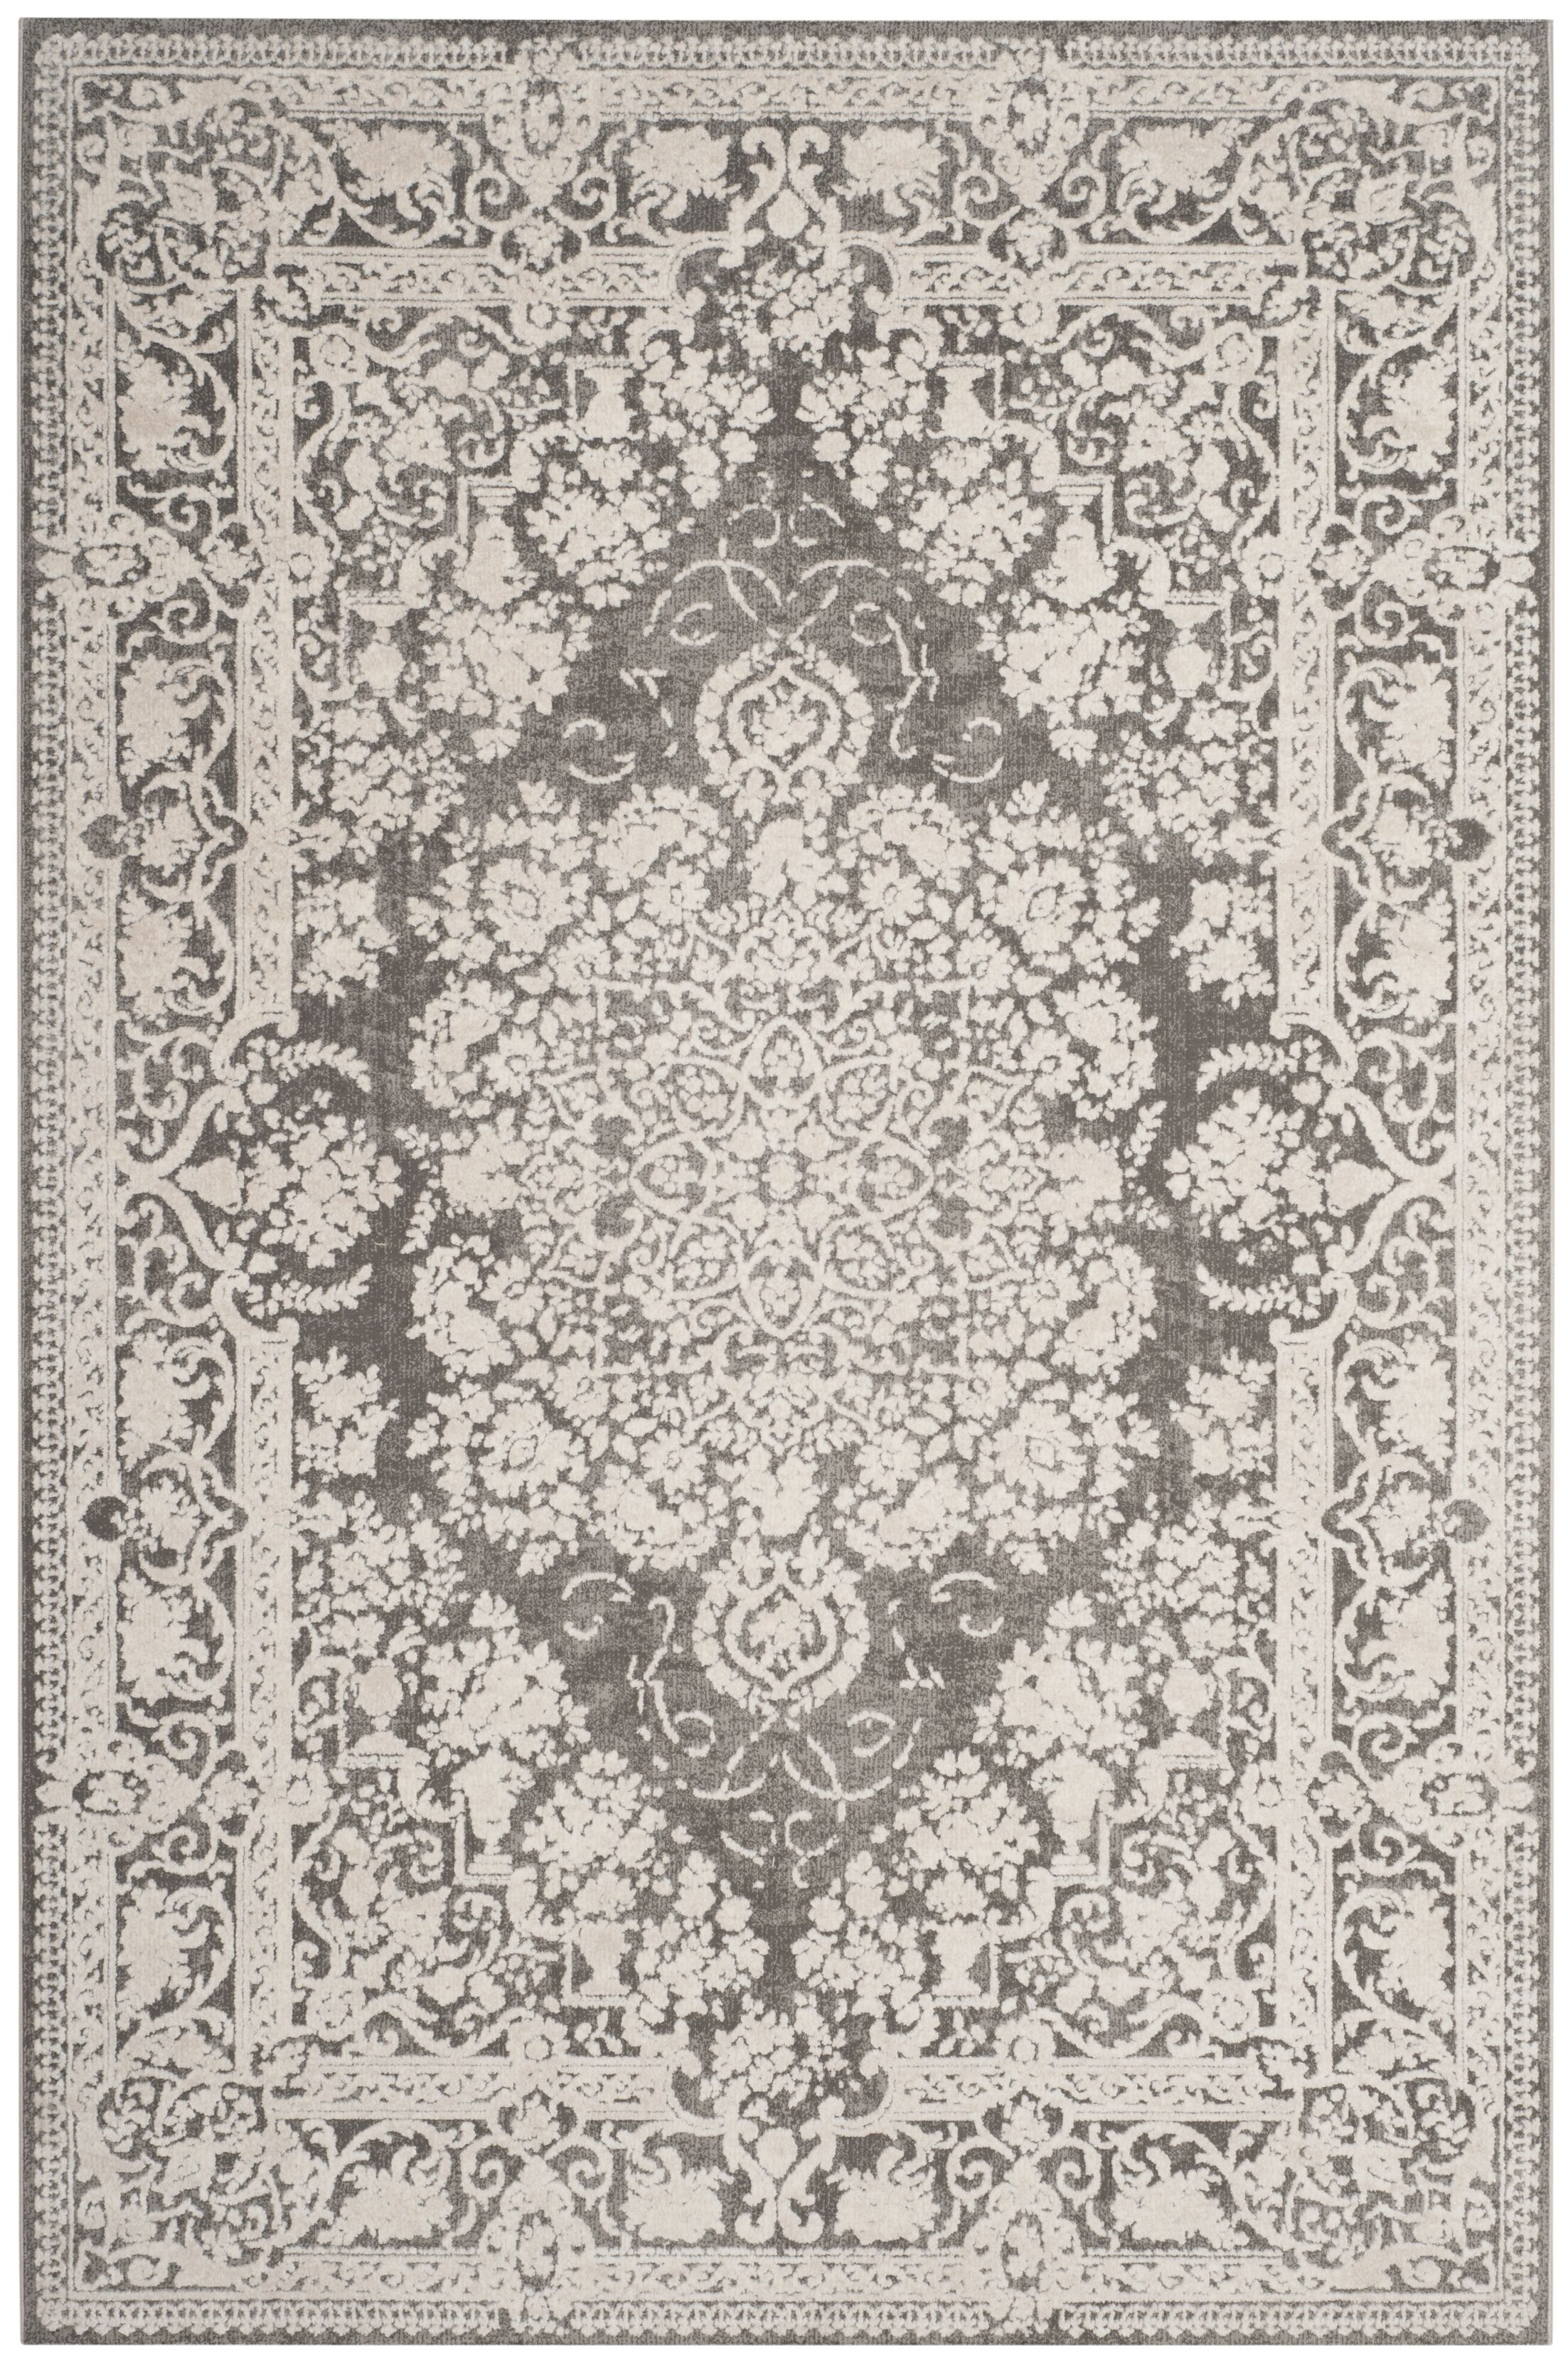 Pellot Dark Gray/Cream Area Rug Rug Size: Round 6'7